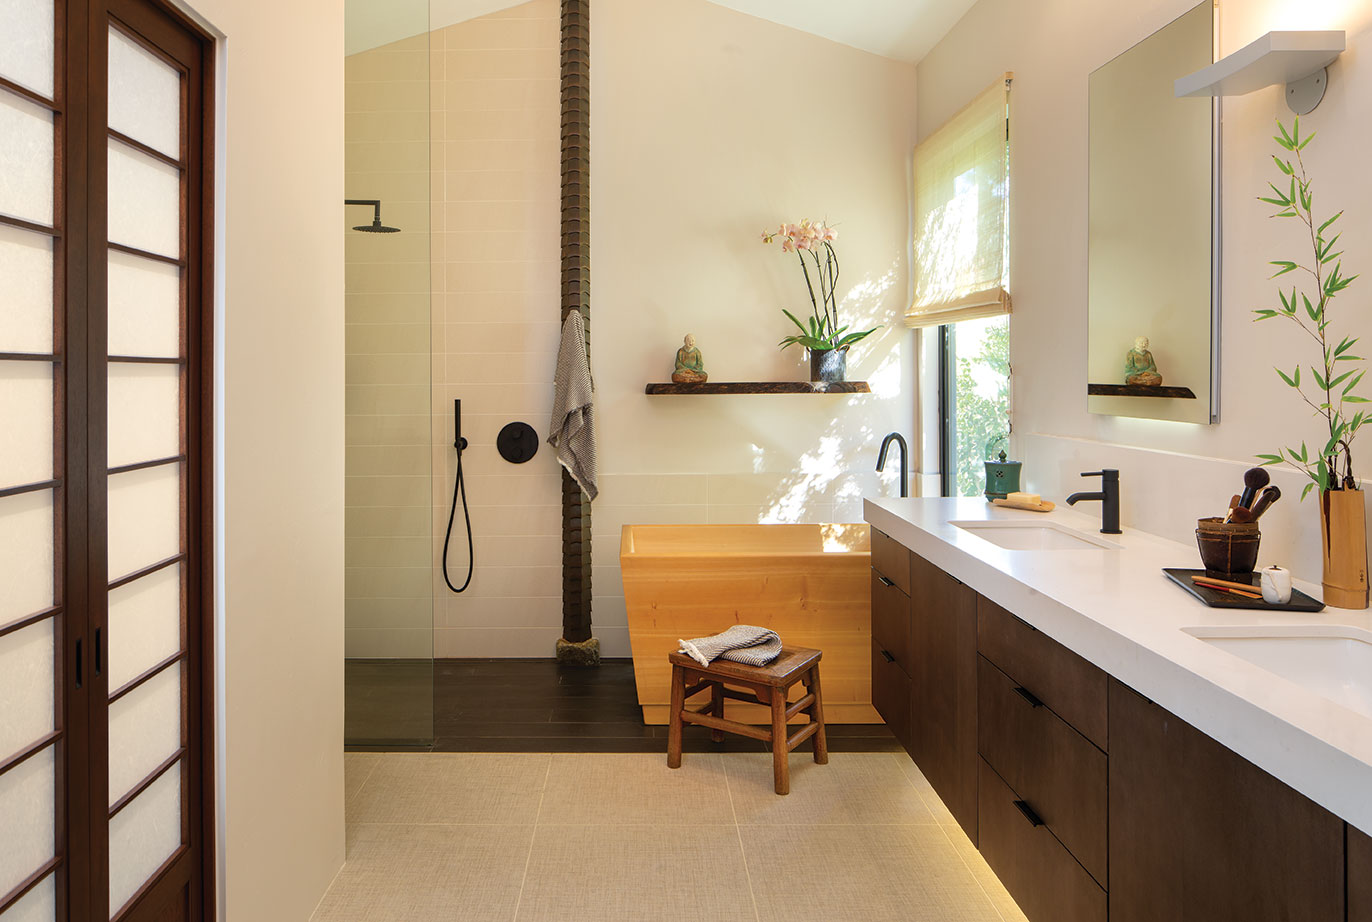 zen bathroom japanese asian hinoki ofuri soaking tub bathtub remodel tatami